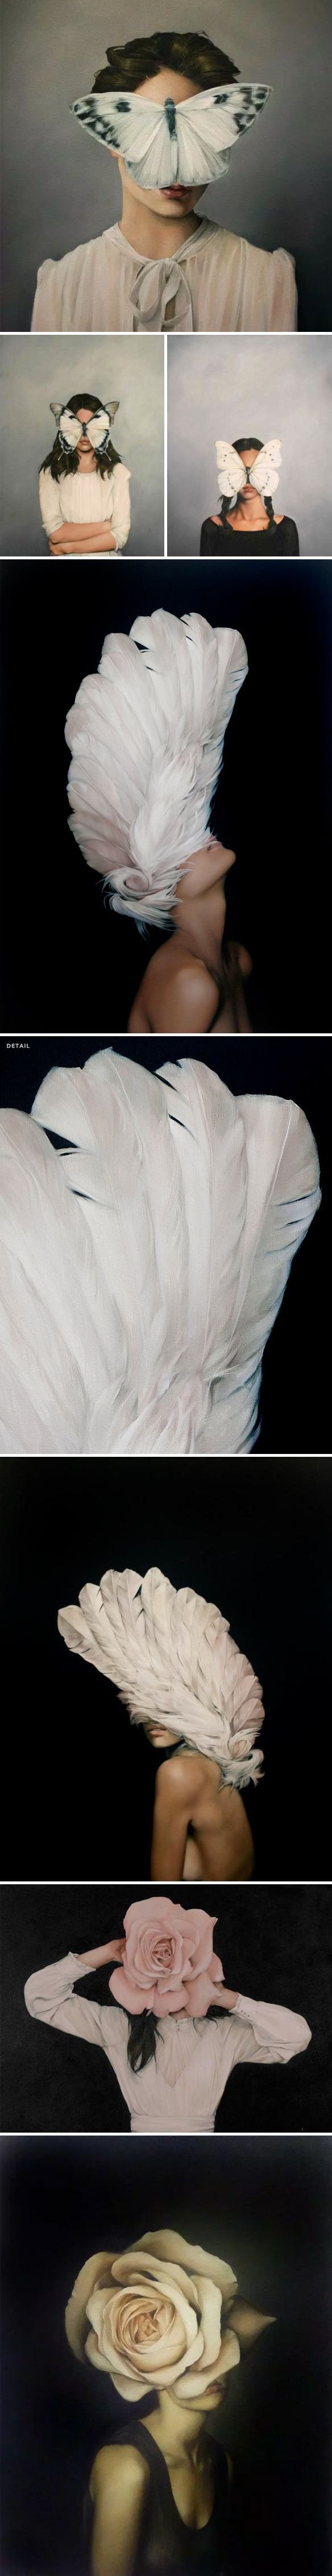 amy judd Butterfly art                                                                                                                                                      More